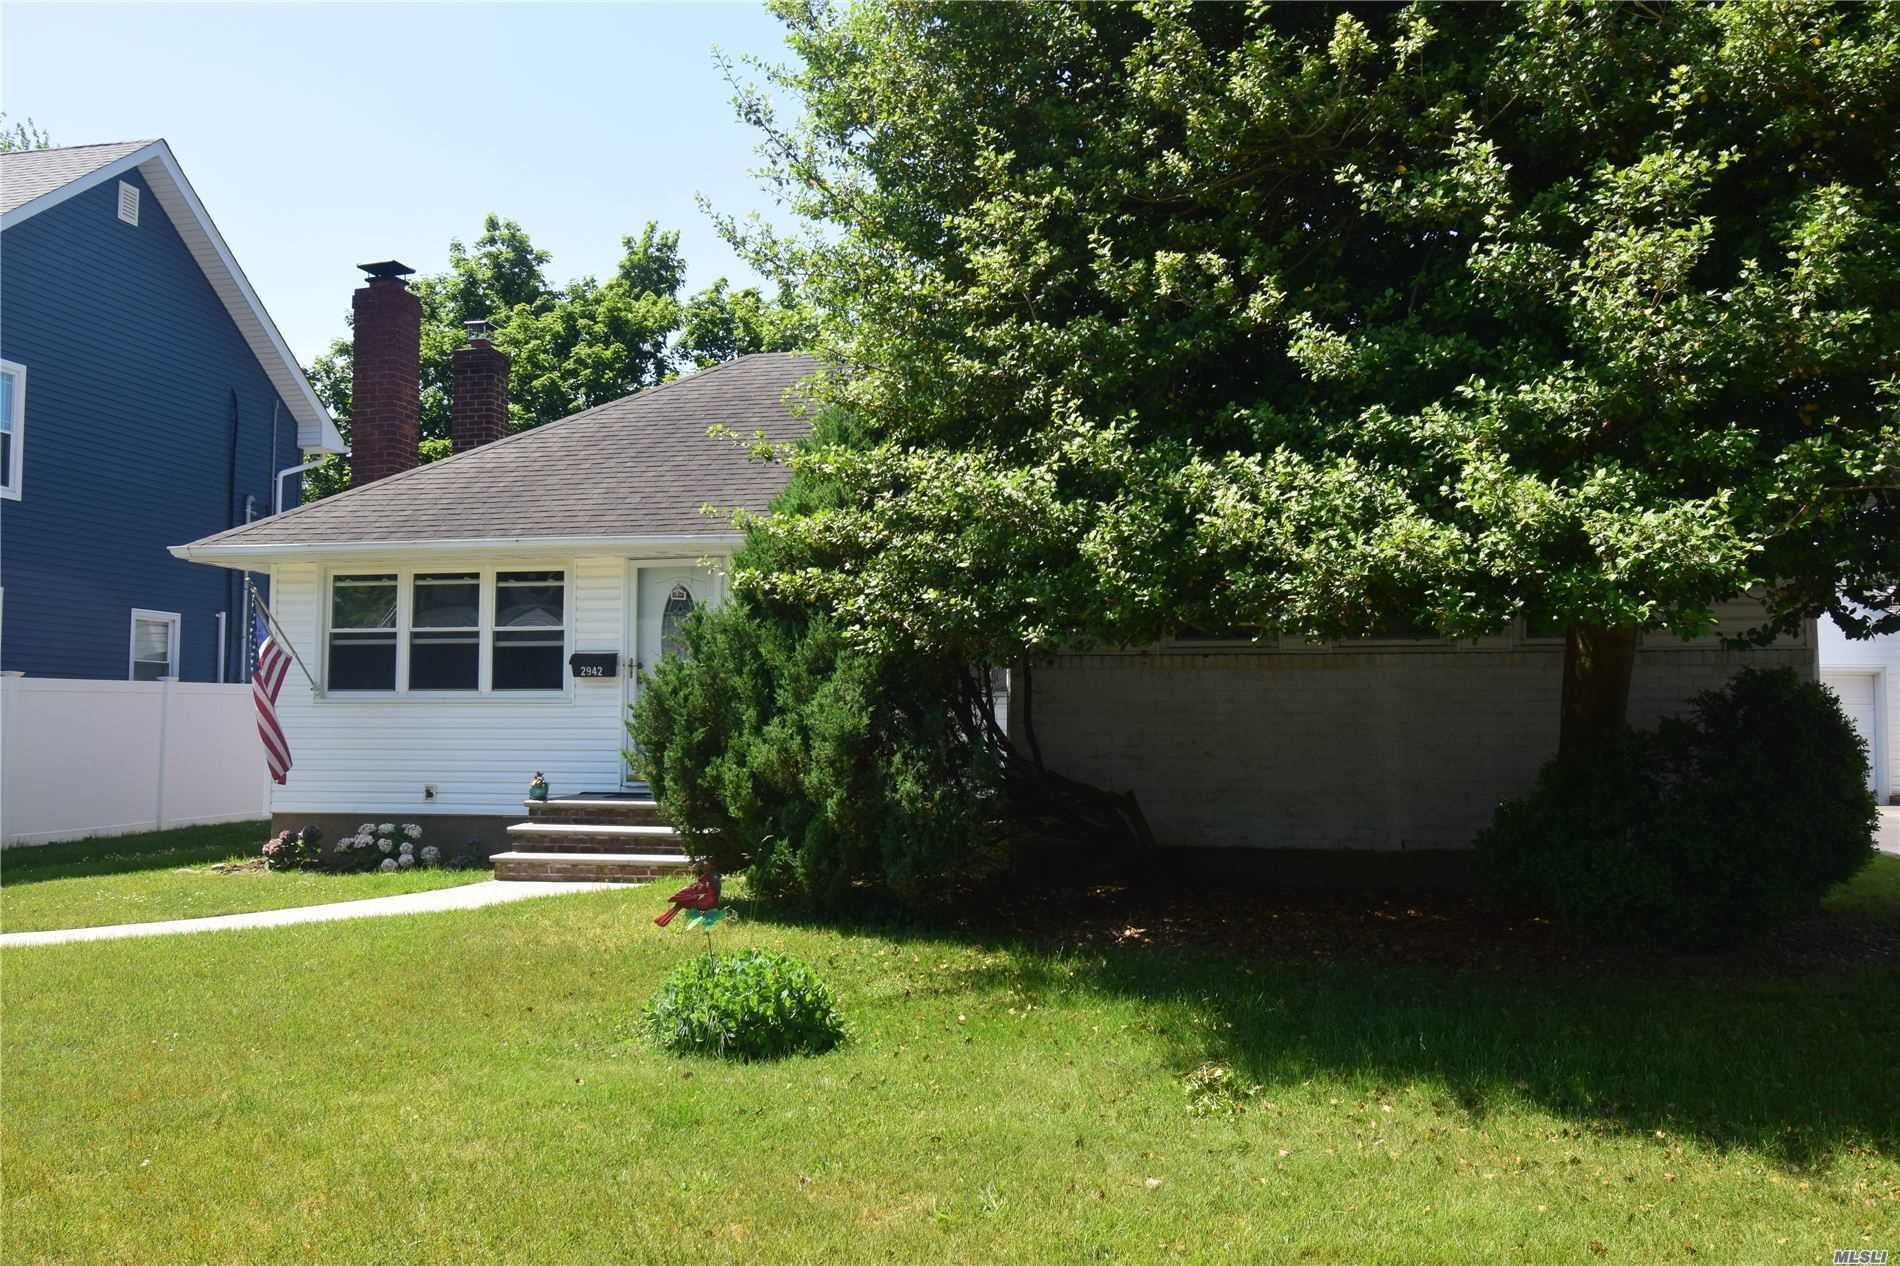 2942 Morgan Dr, Wantagh, NY 11793 - MLS#: 3221248